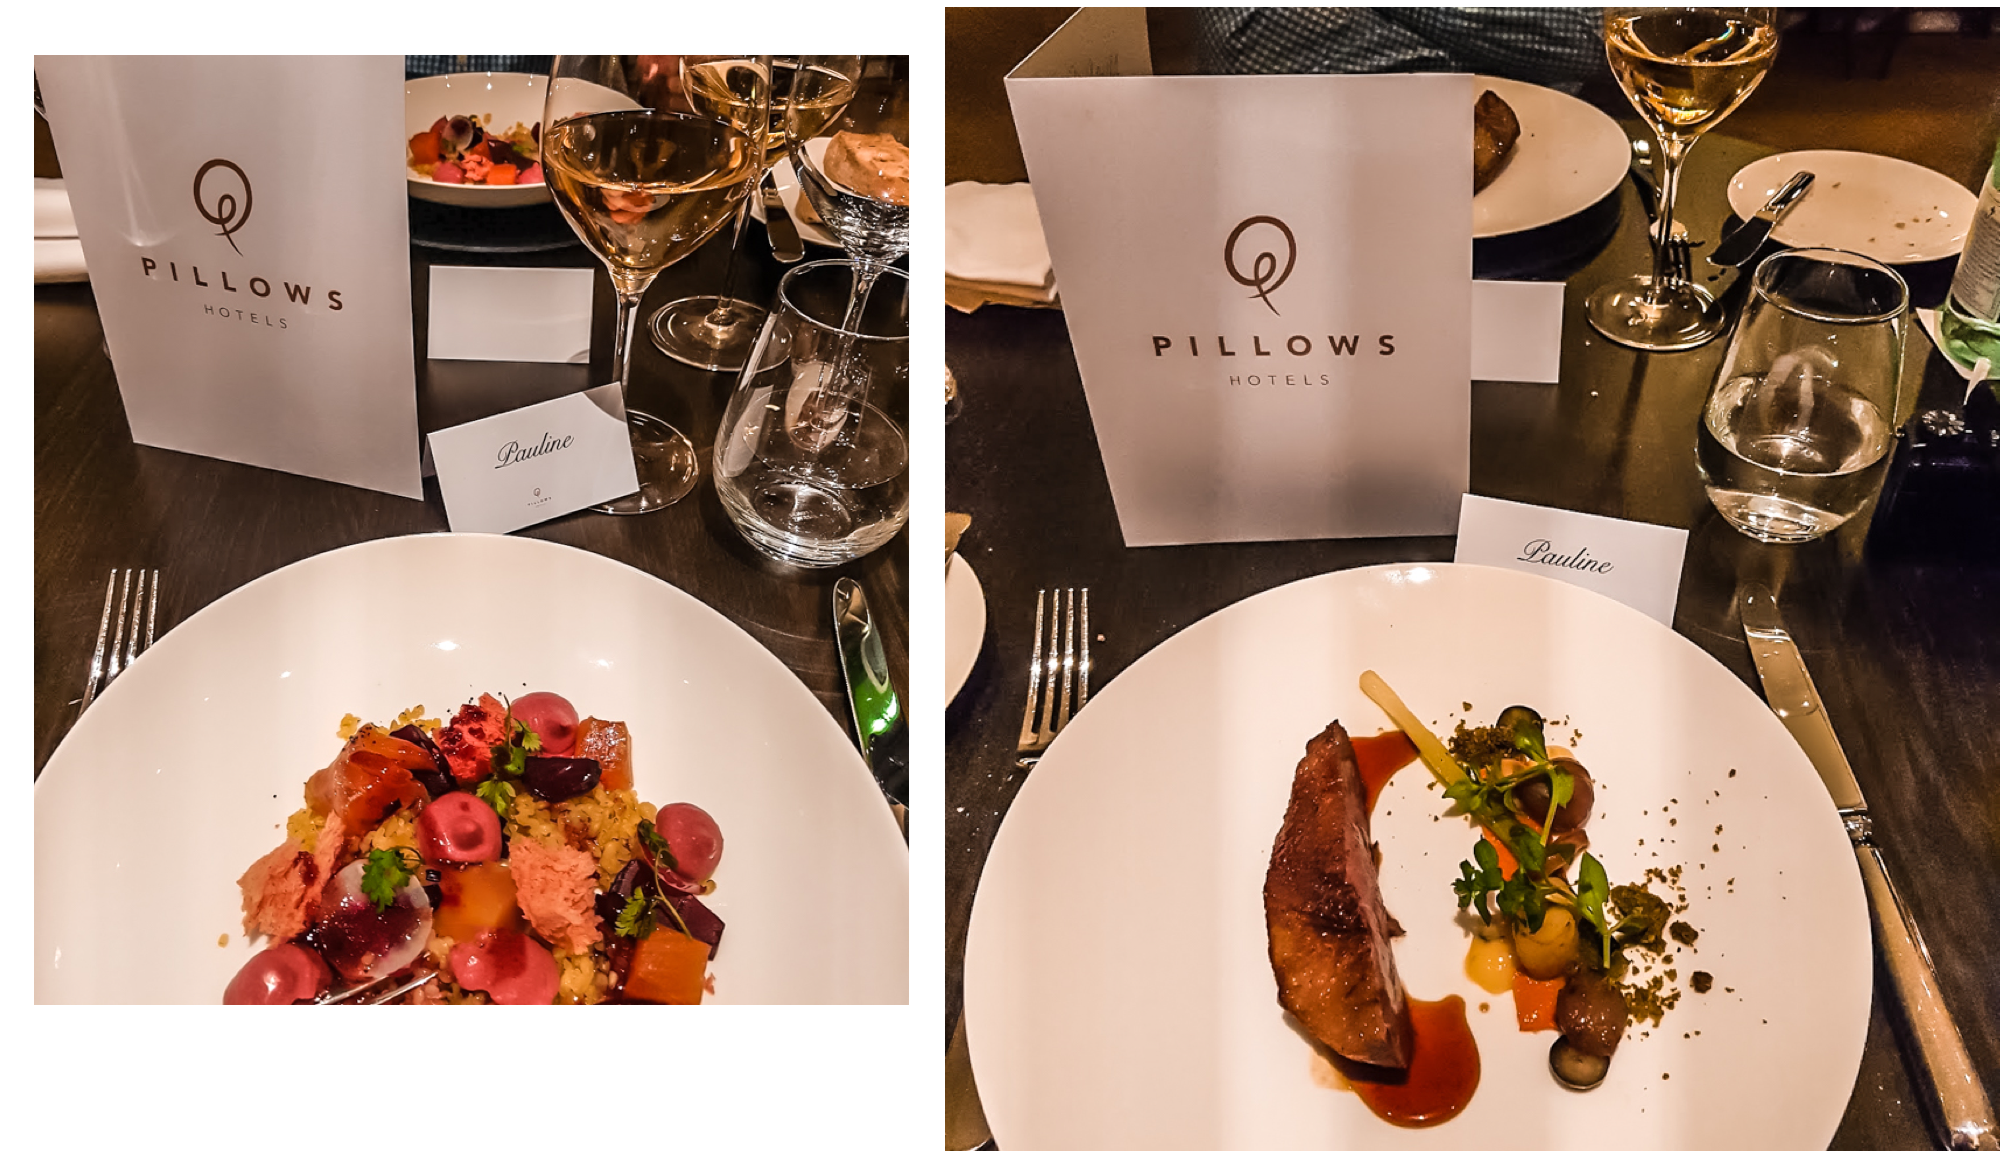 Pillows hotel place rouppe dinner